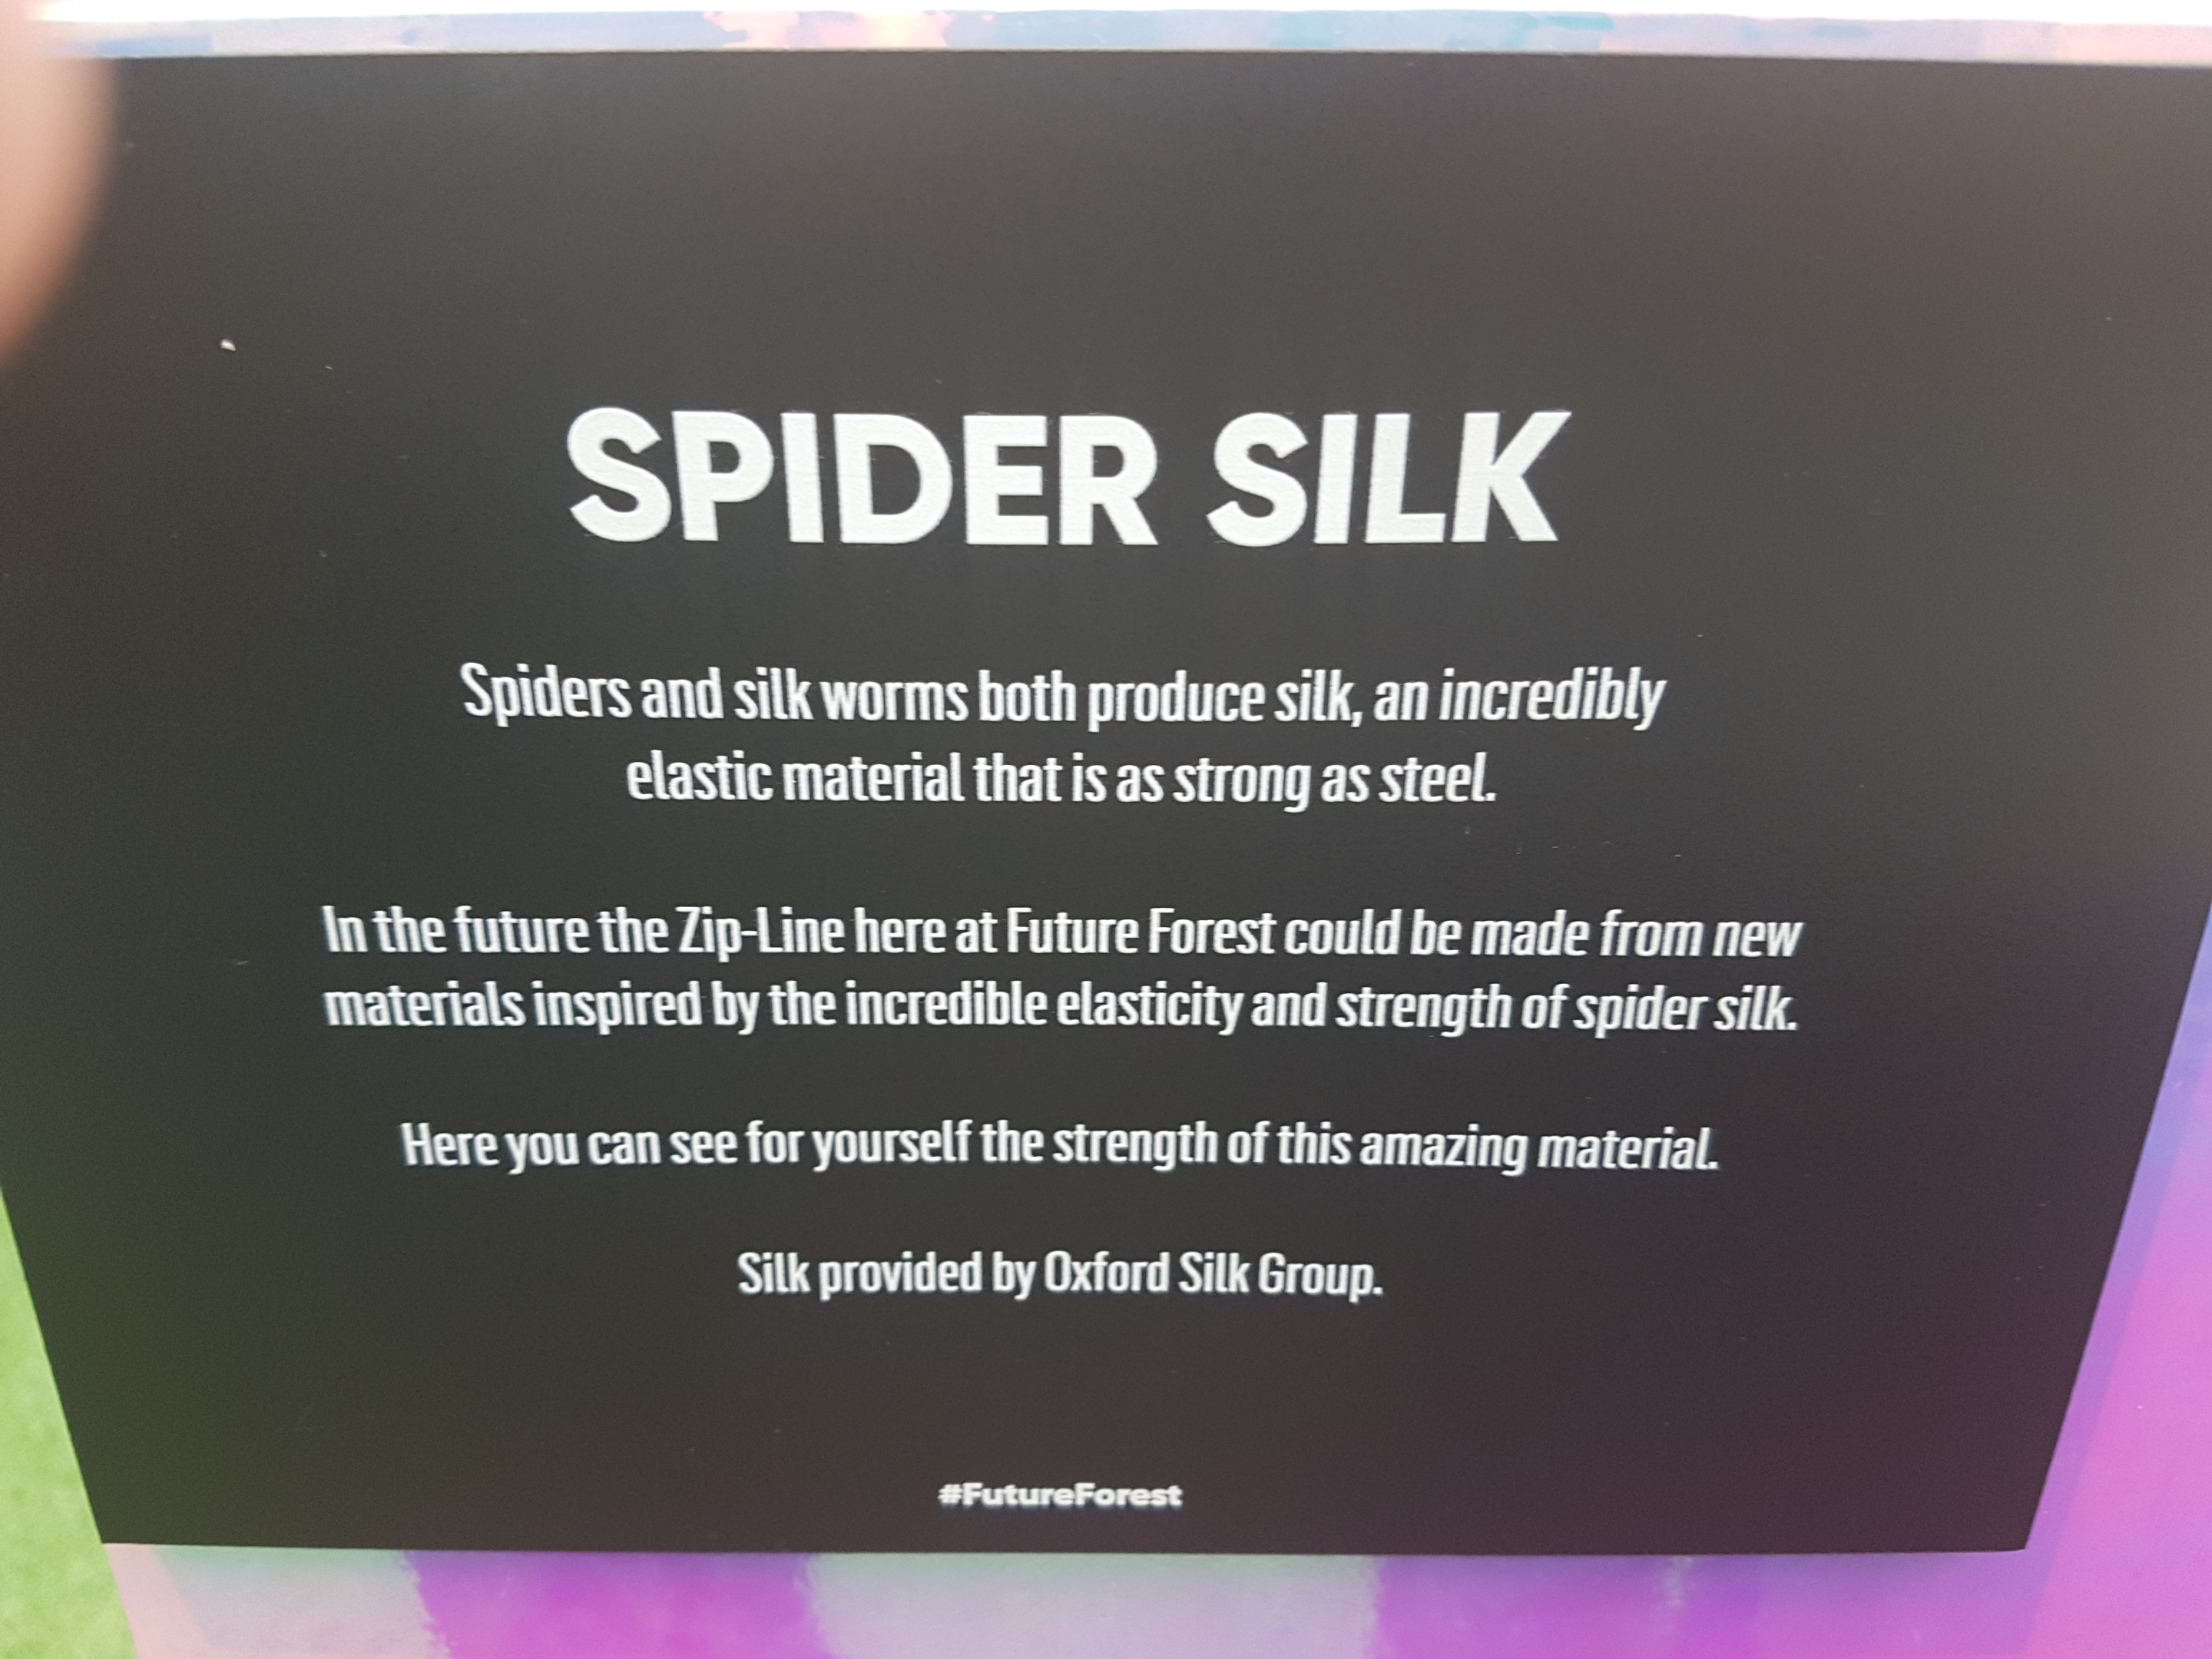 Bompas and Parr Discovering Future Forest - Spider Silk